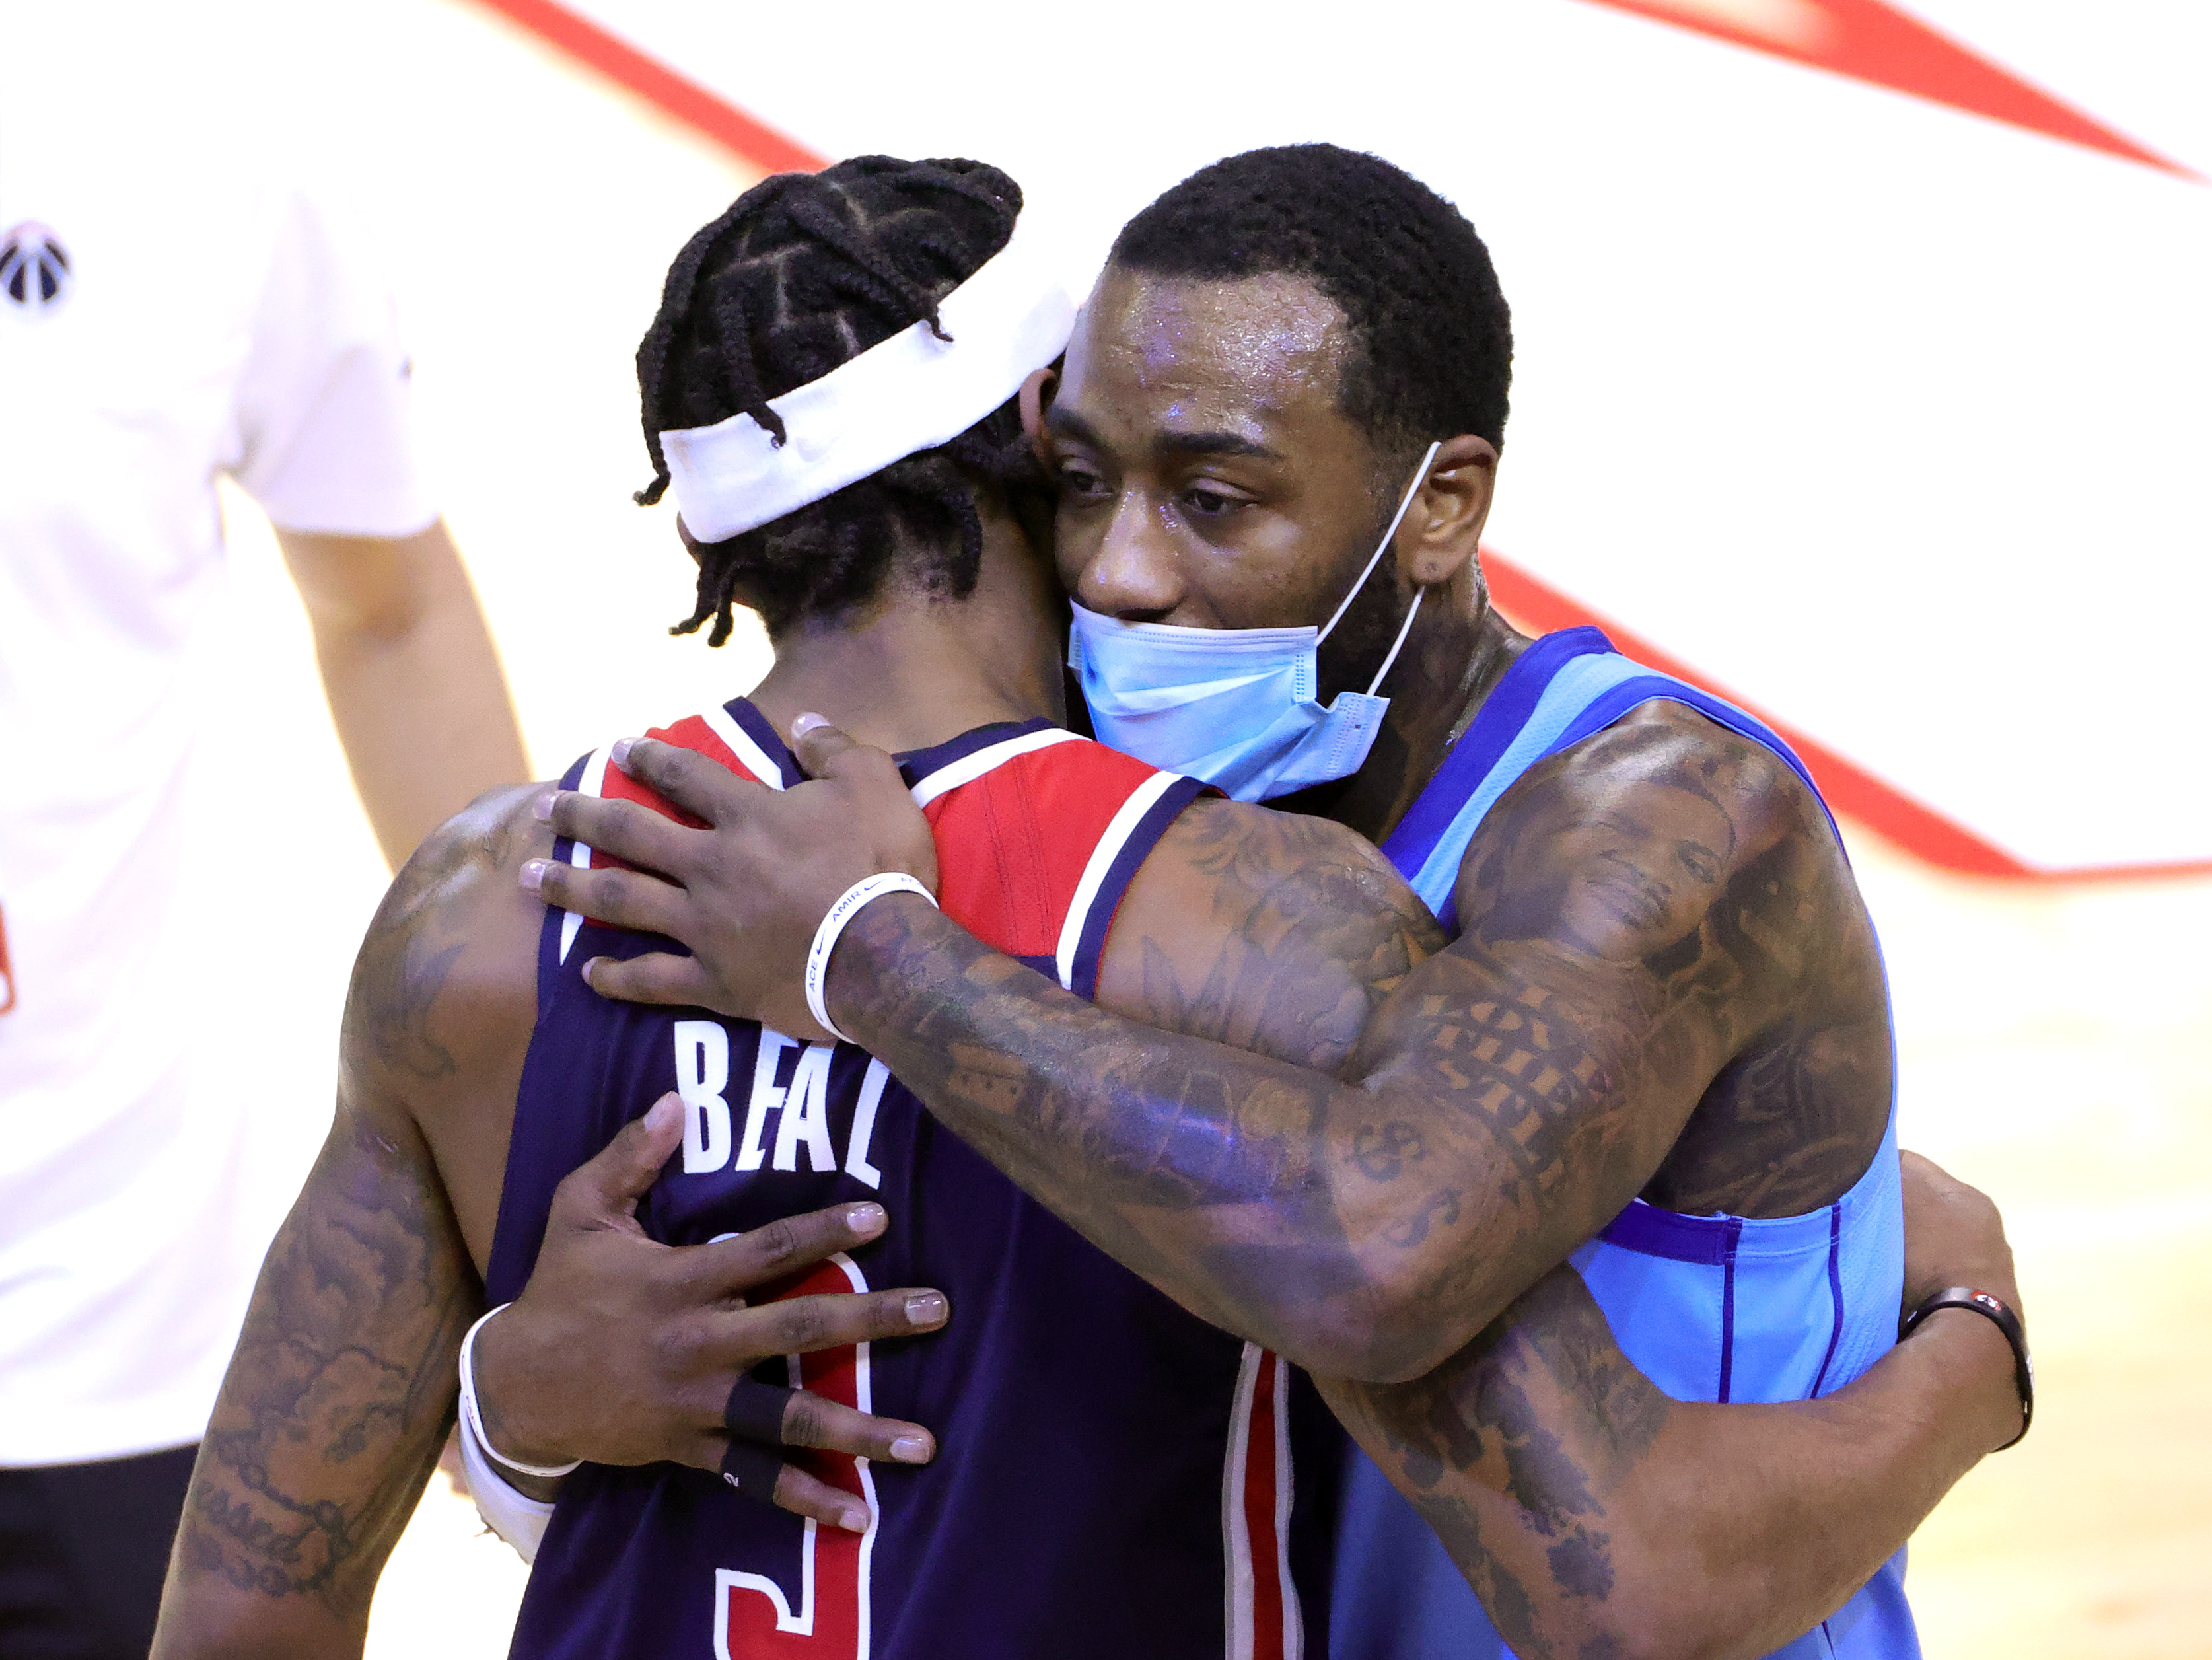 After falling to John Wall, Bradley Beal knows he has to be better